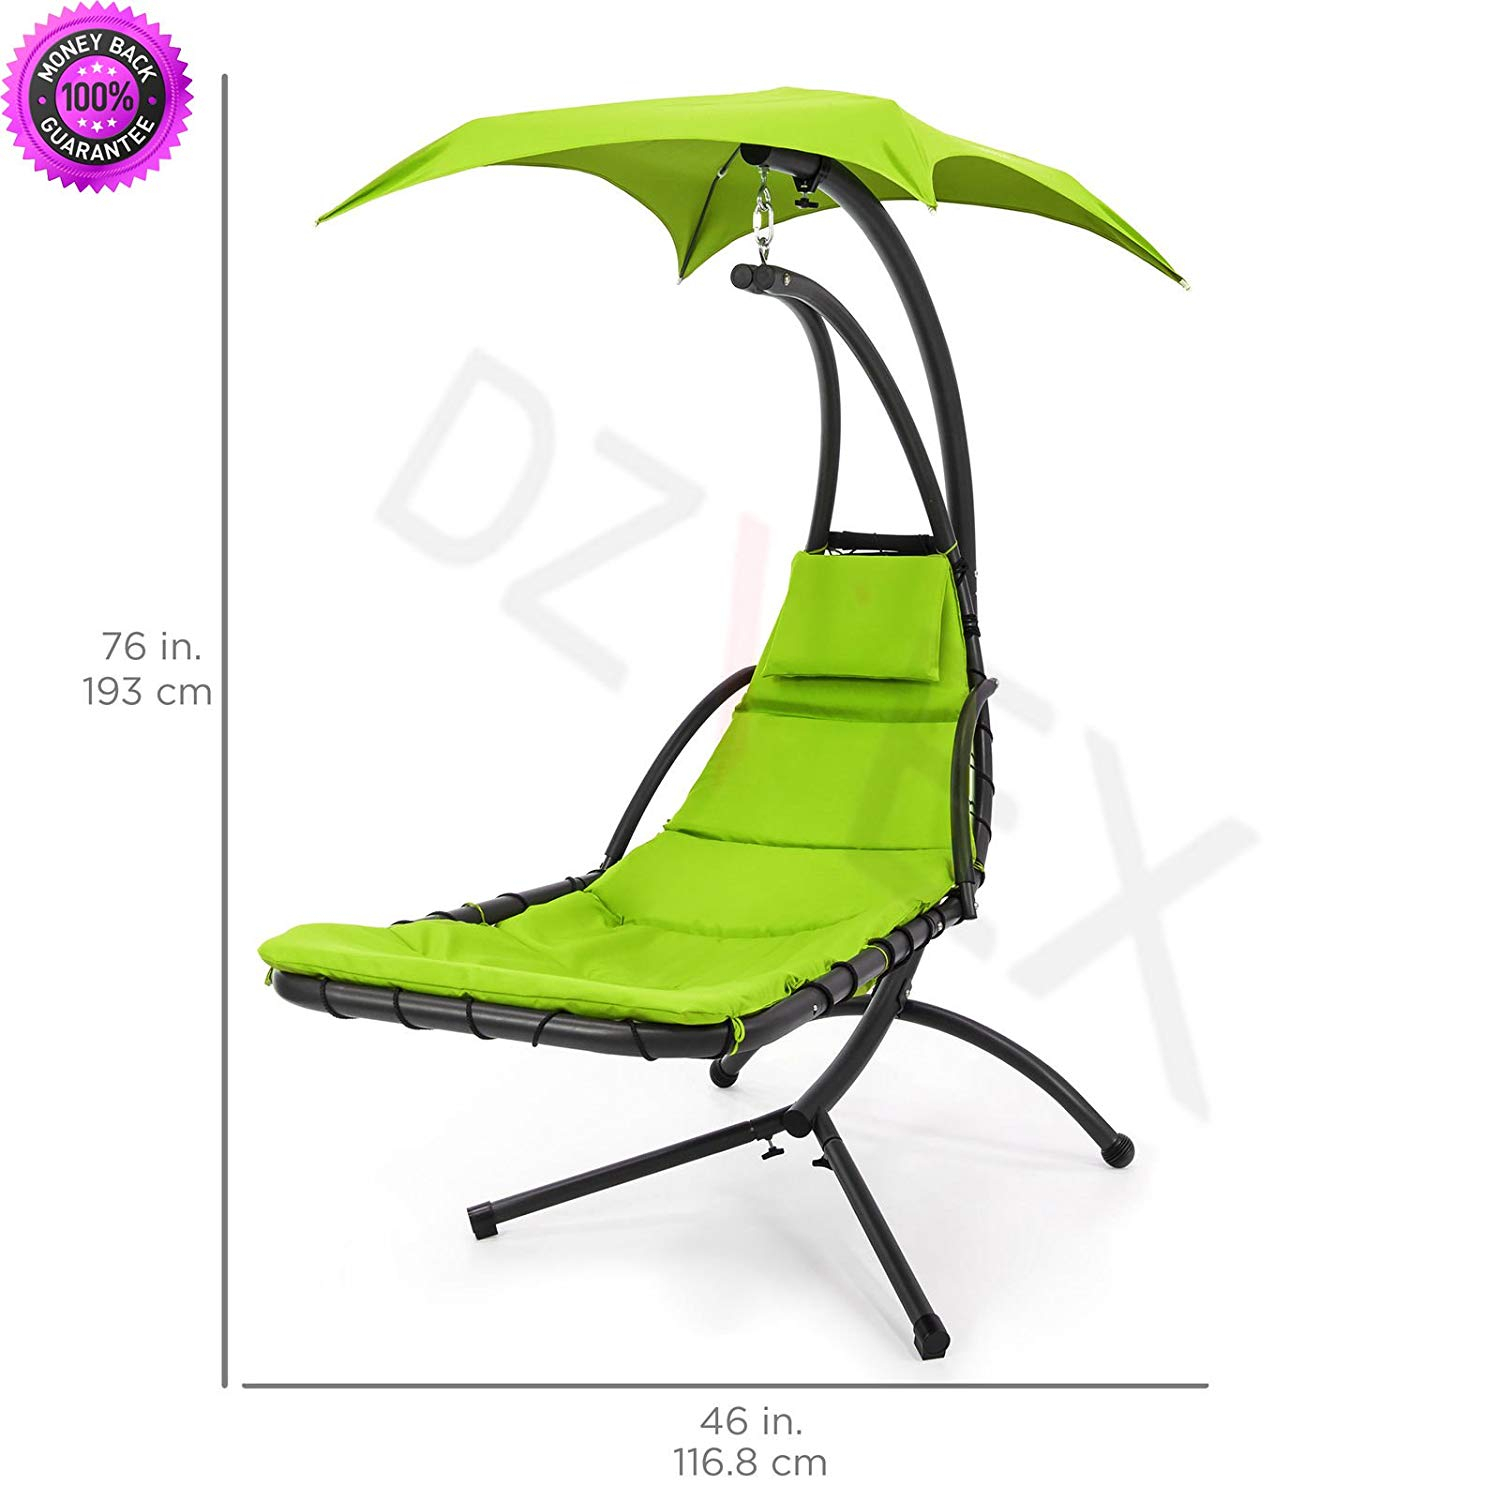 Cheap Canopy For Porch Swing, Find Canopy For Porch Swing With Regard To Outdoor Canopy Hammock Porch Swings With Stand (View 19 of 25)